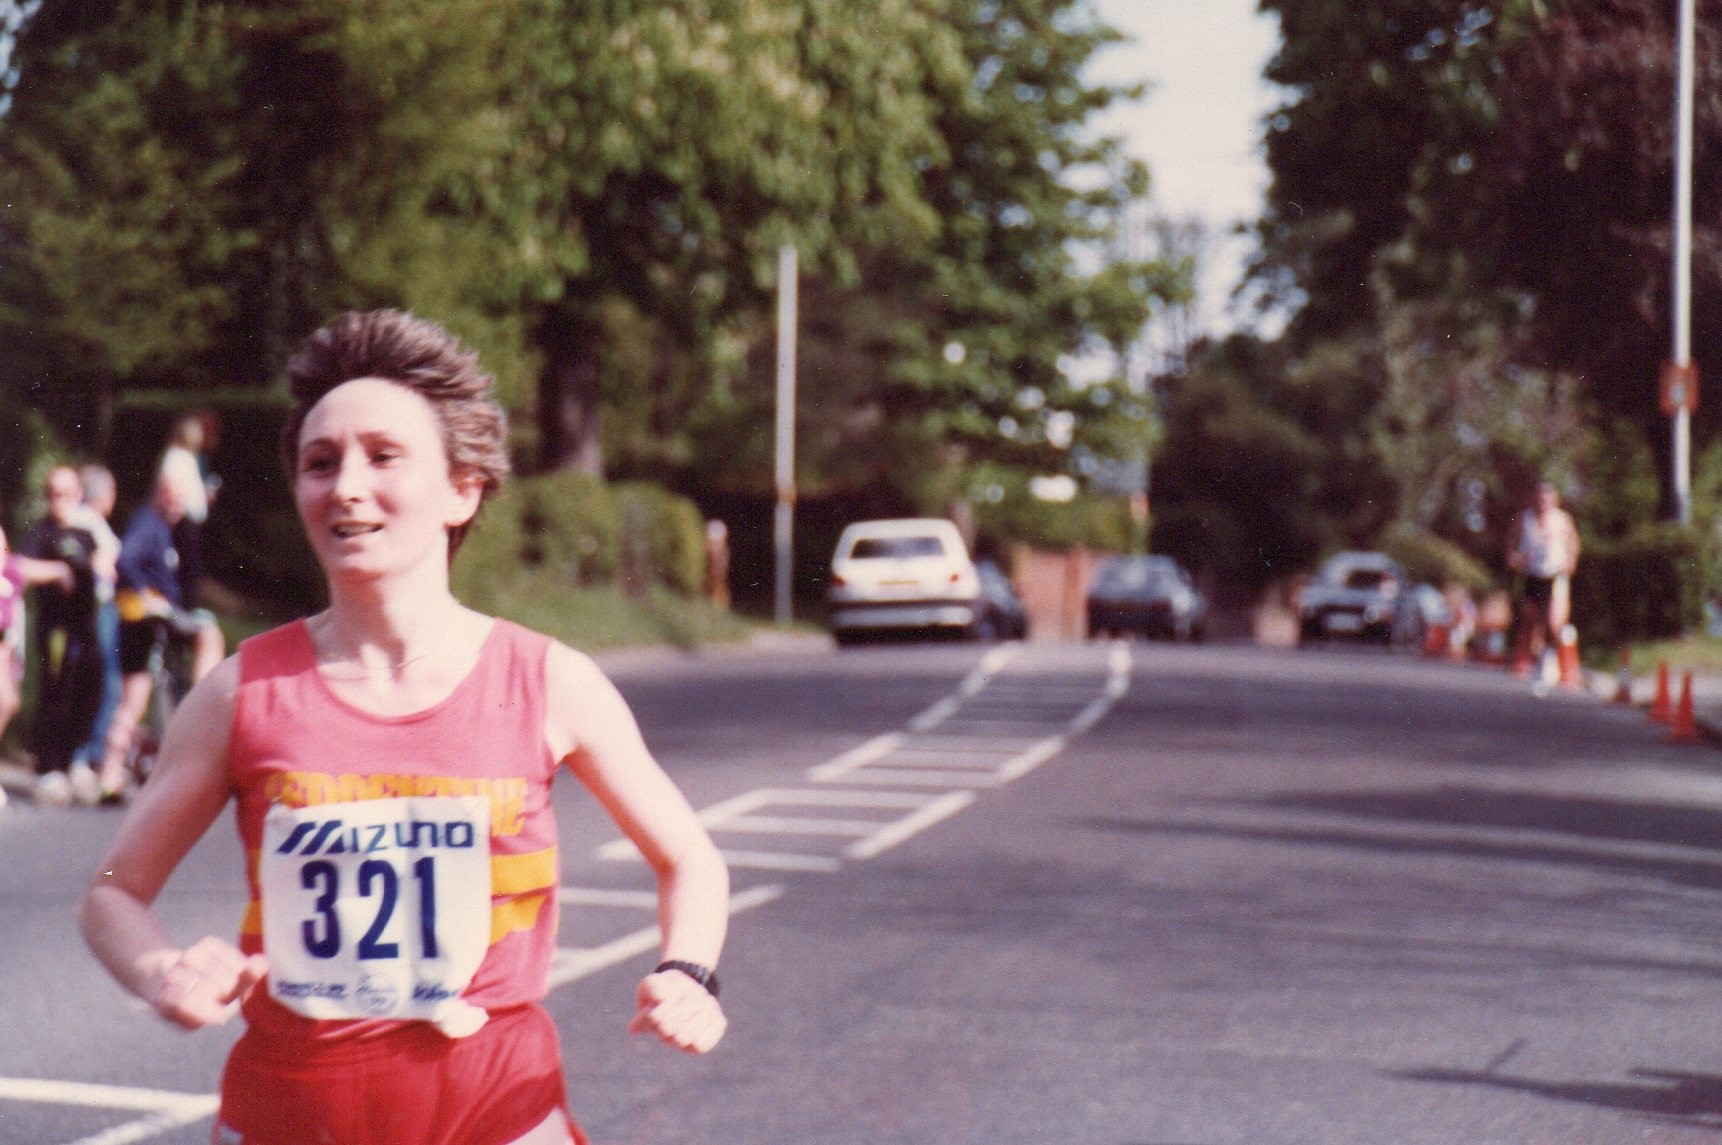 Barbara approaching the finish line in the 1990 Finchley 20 mile road race (Family handout/PA)